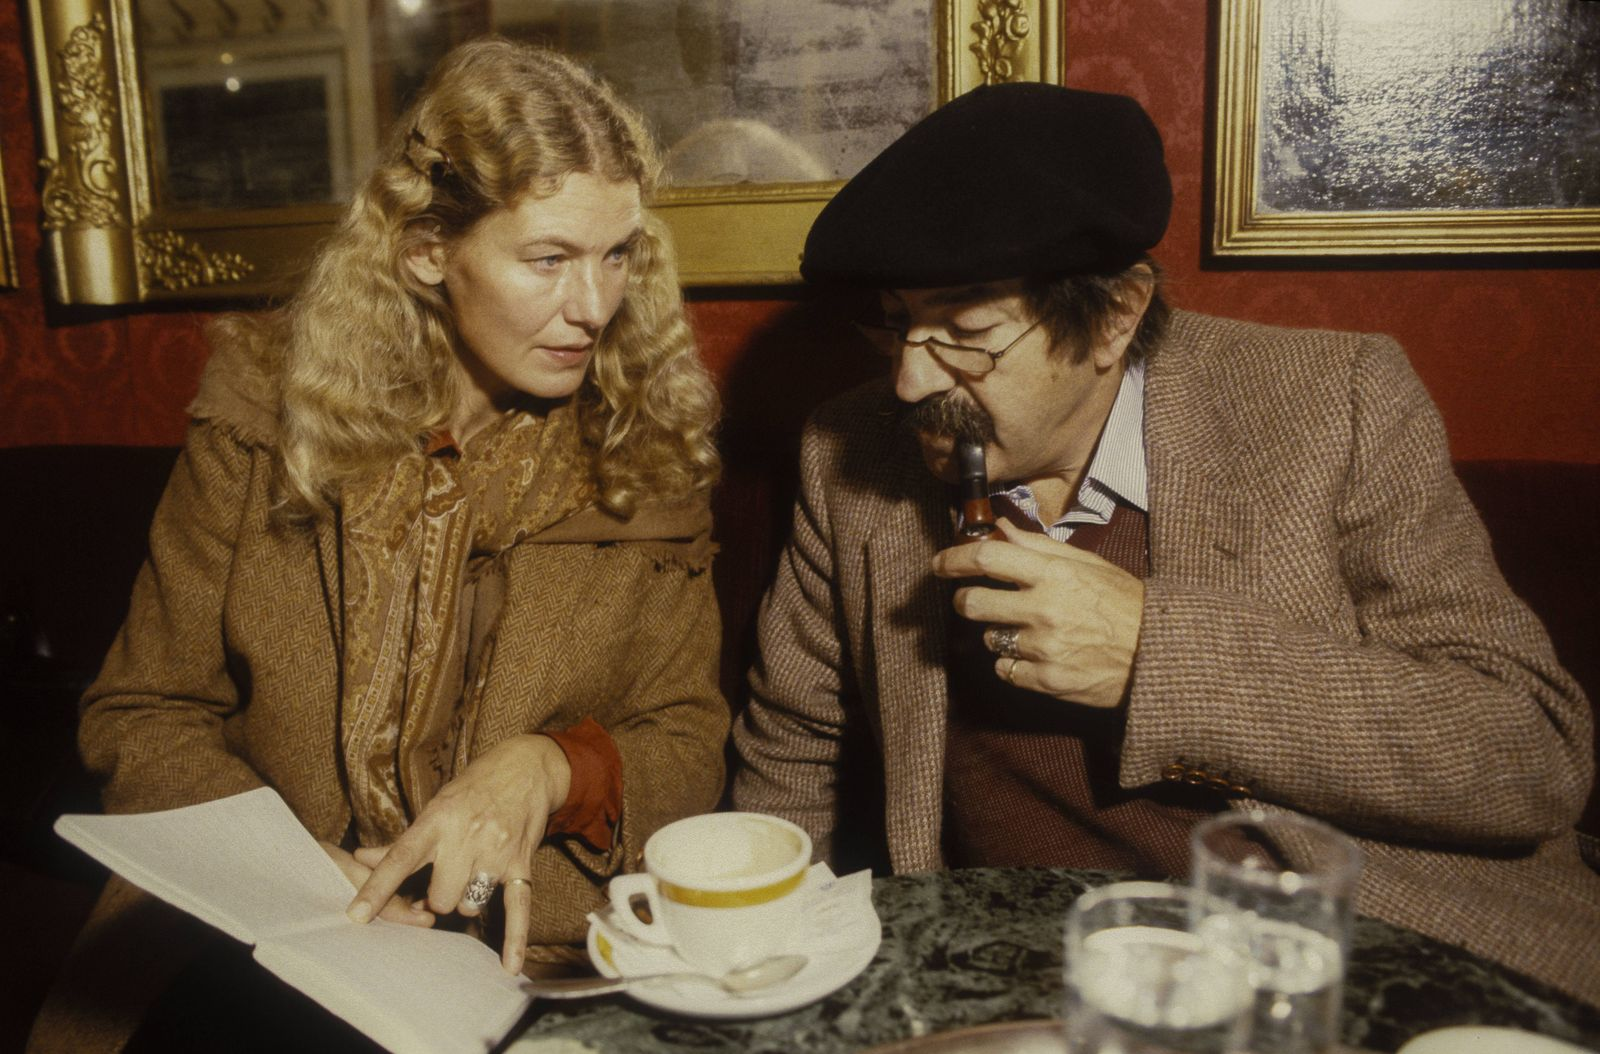 Rome Caffe Greco about 1985 German writer Günter Grass and his wife Ute Grunert Roma Caffe Gre